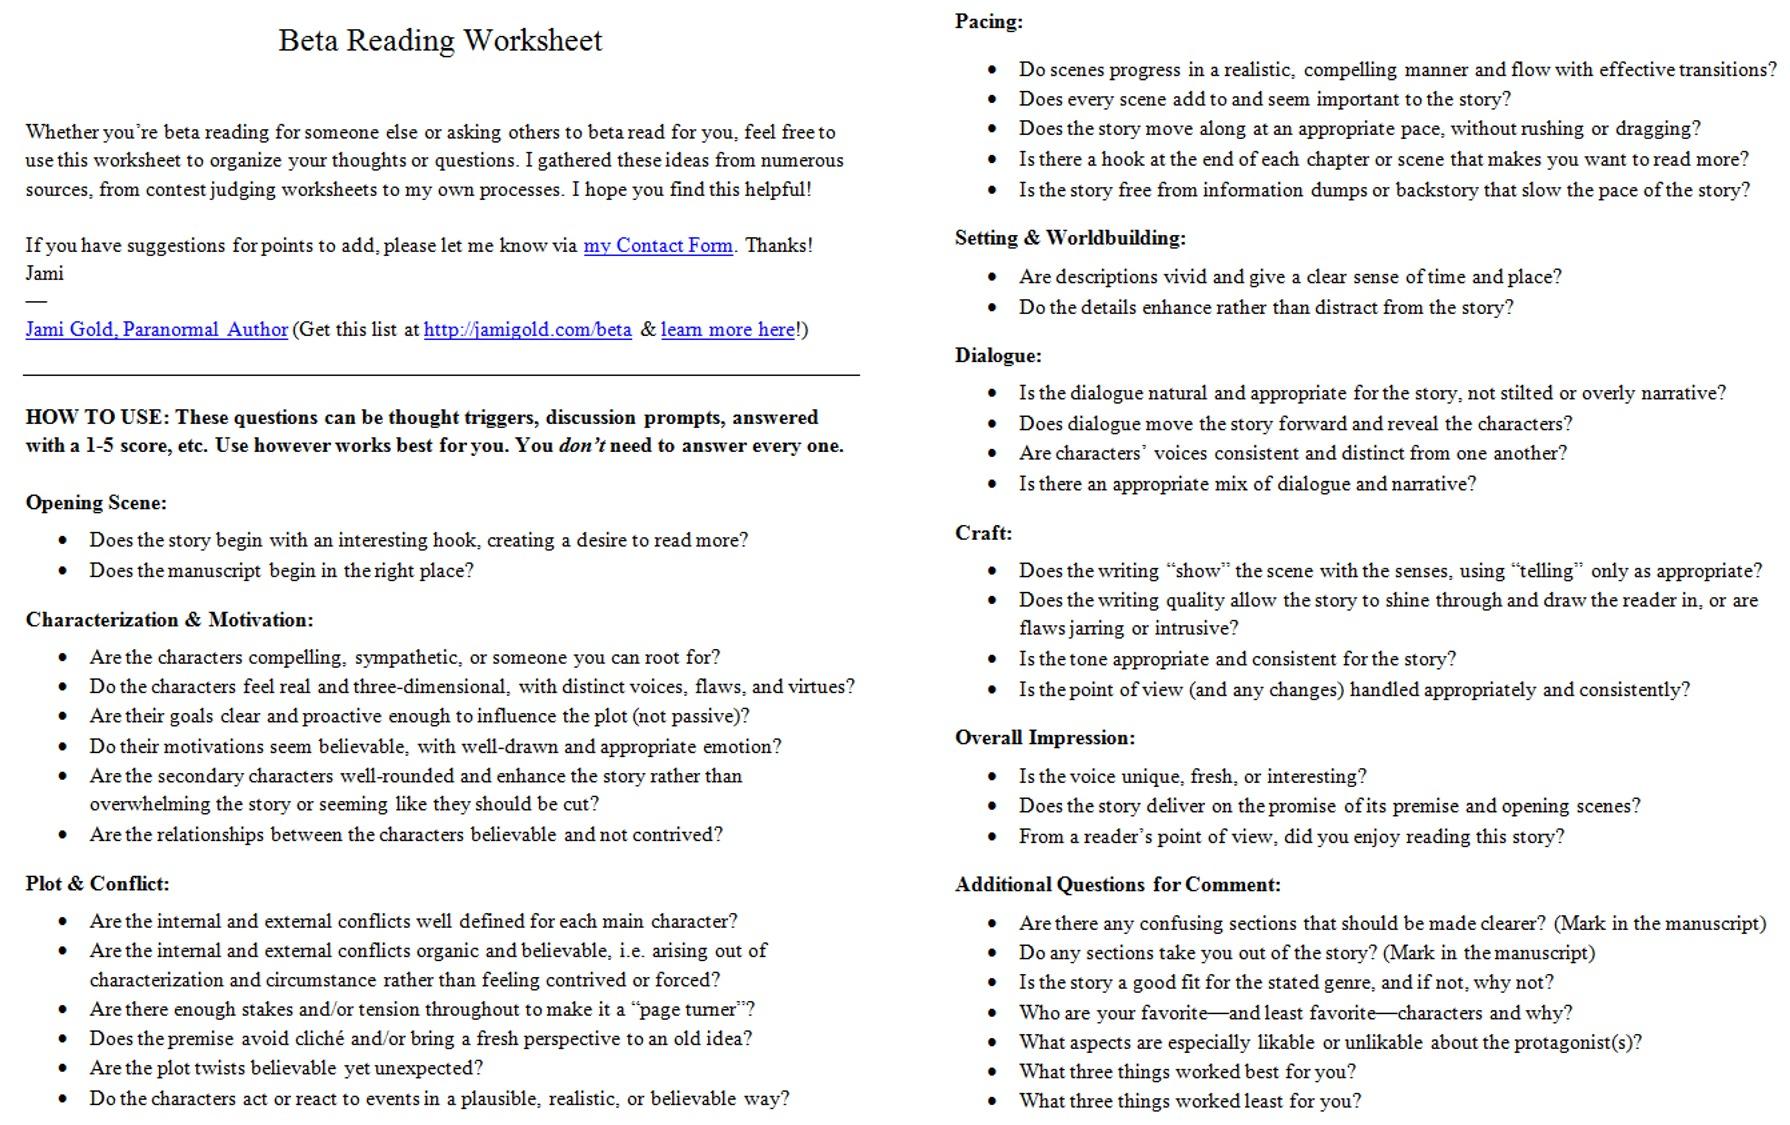 Proatmealus  Unusual Worksheets For Writers  Jami Gold Paranormal Author With Entrancing Screen Shot Of The Twopage Beta Reading Worksheet With Delightful Solving Systems Using Matrices Worksheet Also High School History Worksheets In Addition Using Apostrophes Worksheet And Reading Tape Measure Worksheet As Well As Convection Worksheet Additionally Simple Present Worksheets From Jamigoldcom With Proatmealus  Entrancing Worksheets For Writers  Jami Gold Paranormal Author With Delightful Screen Shot Of The Twopage Beta Reading Worksheet And Unusual Solving Systems Using Matrices Worksheet Also High School History Worksheets In Addition Using Apostrophes Worksheet From Jamigoldcom